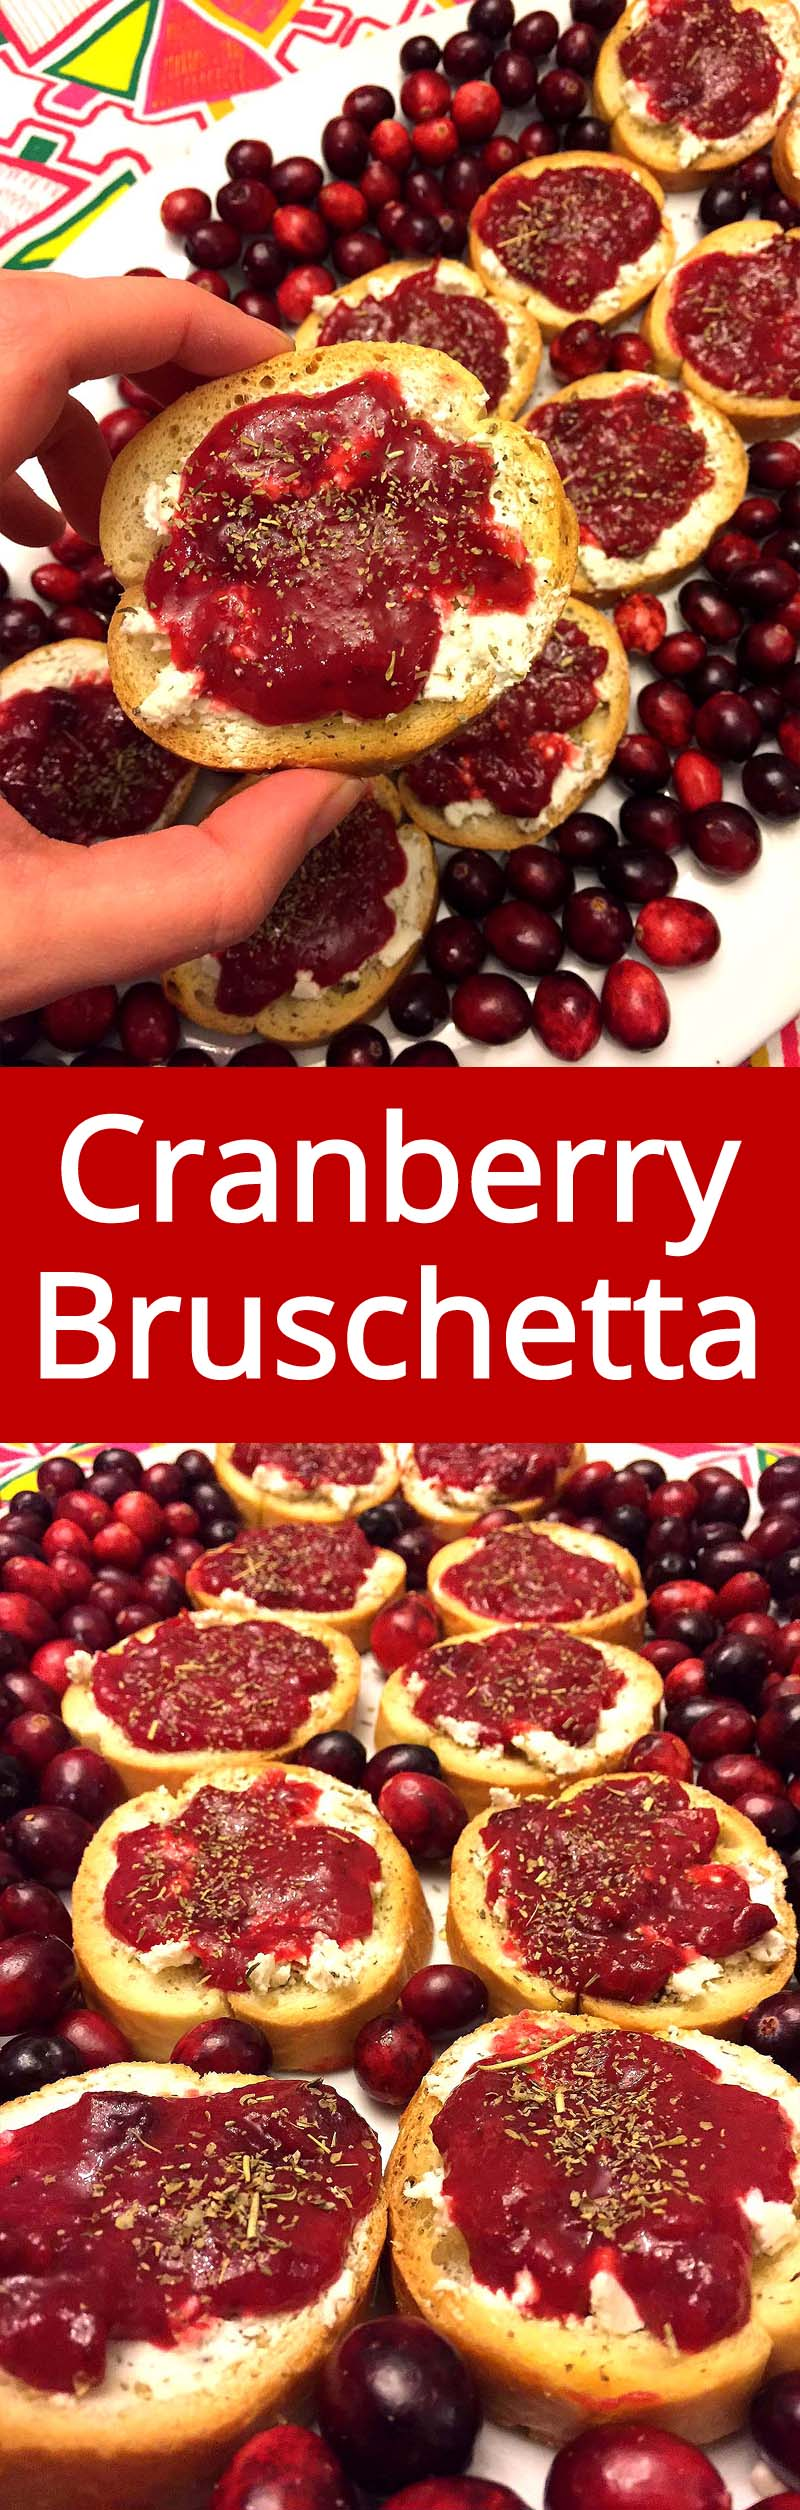 Cranberry Goat Cheese Bruschetta Appetizer - so festive, easy to make and yummy! | MelanieCooks.com